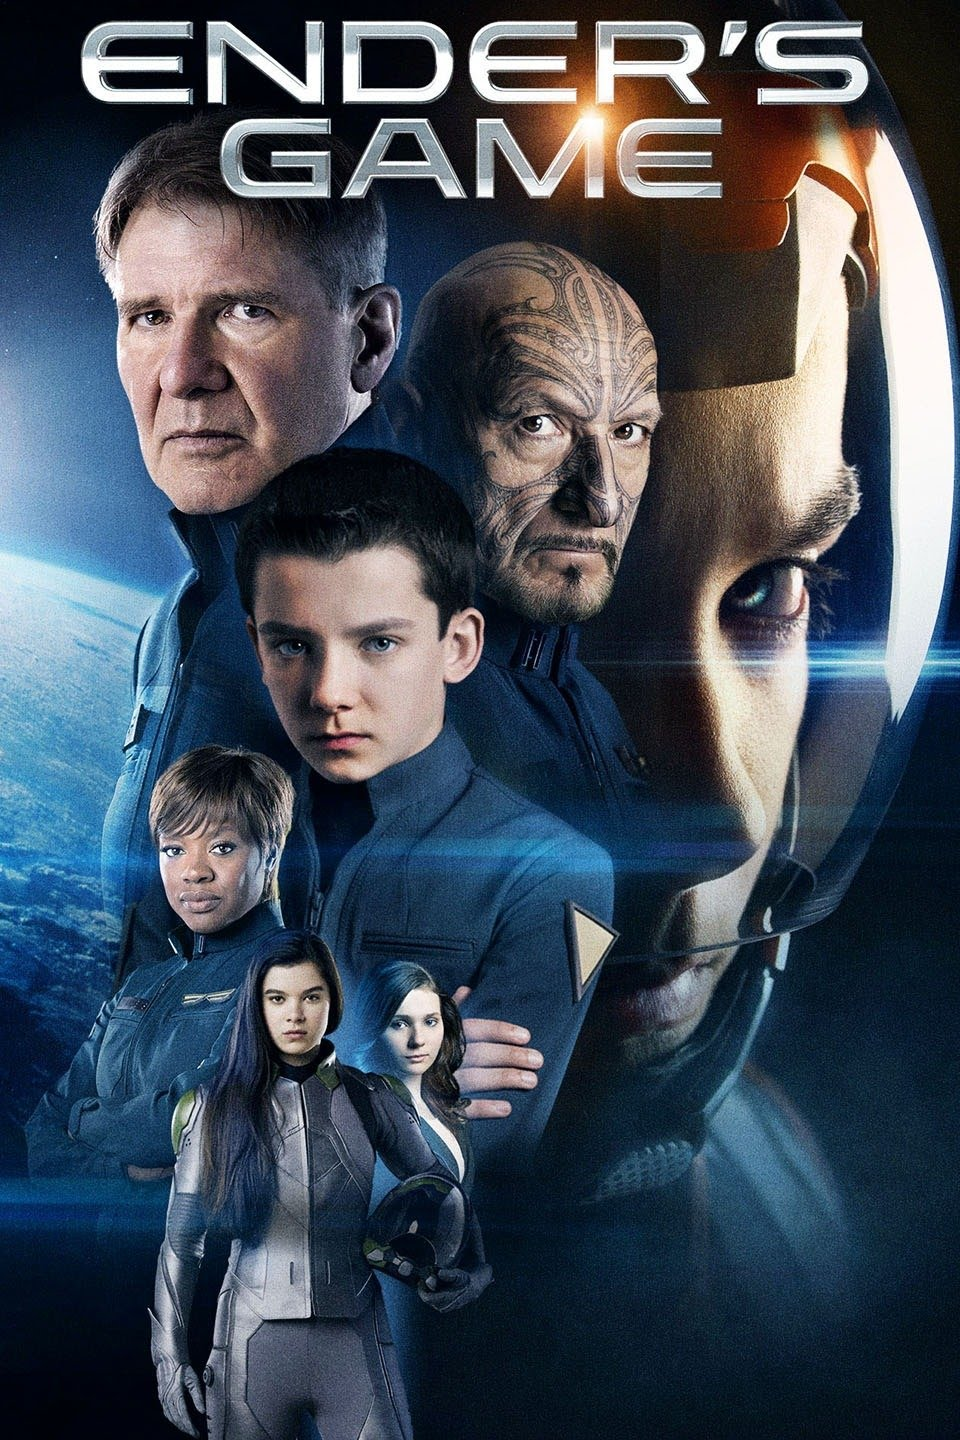 Ender's Game (2017) iTunes HD redemption only